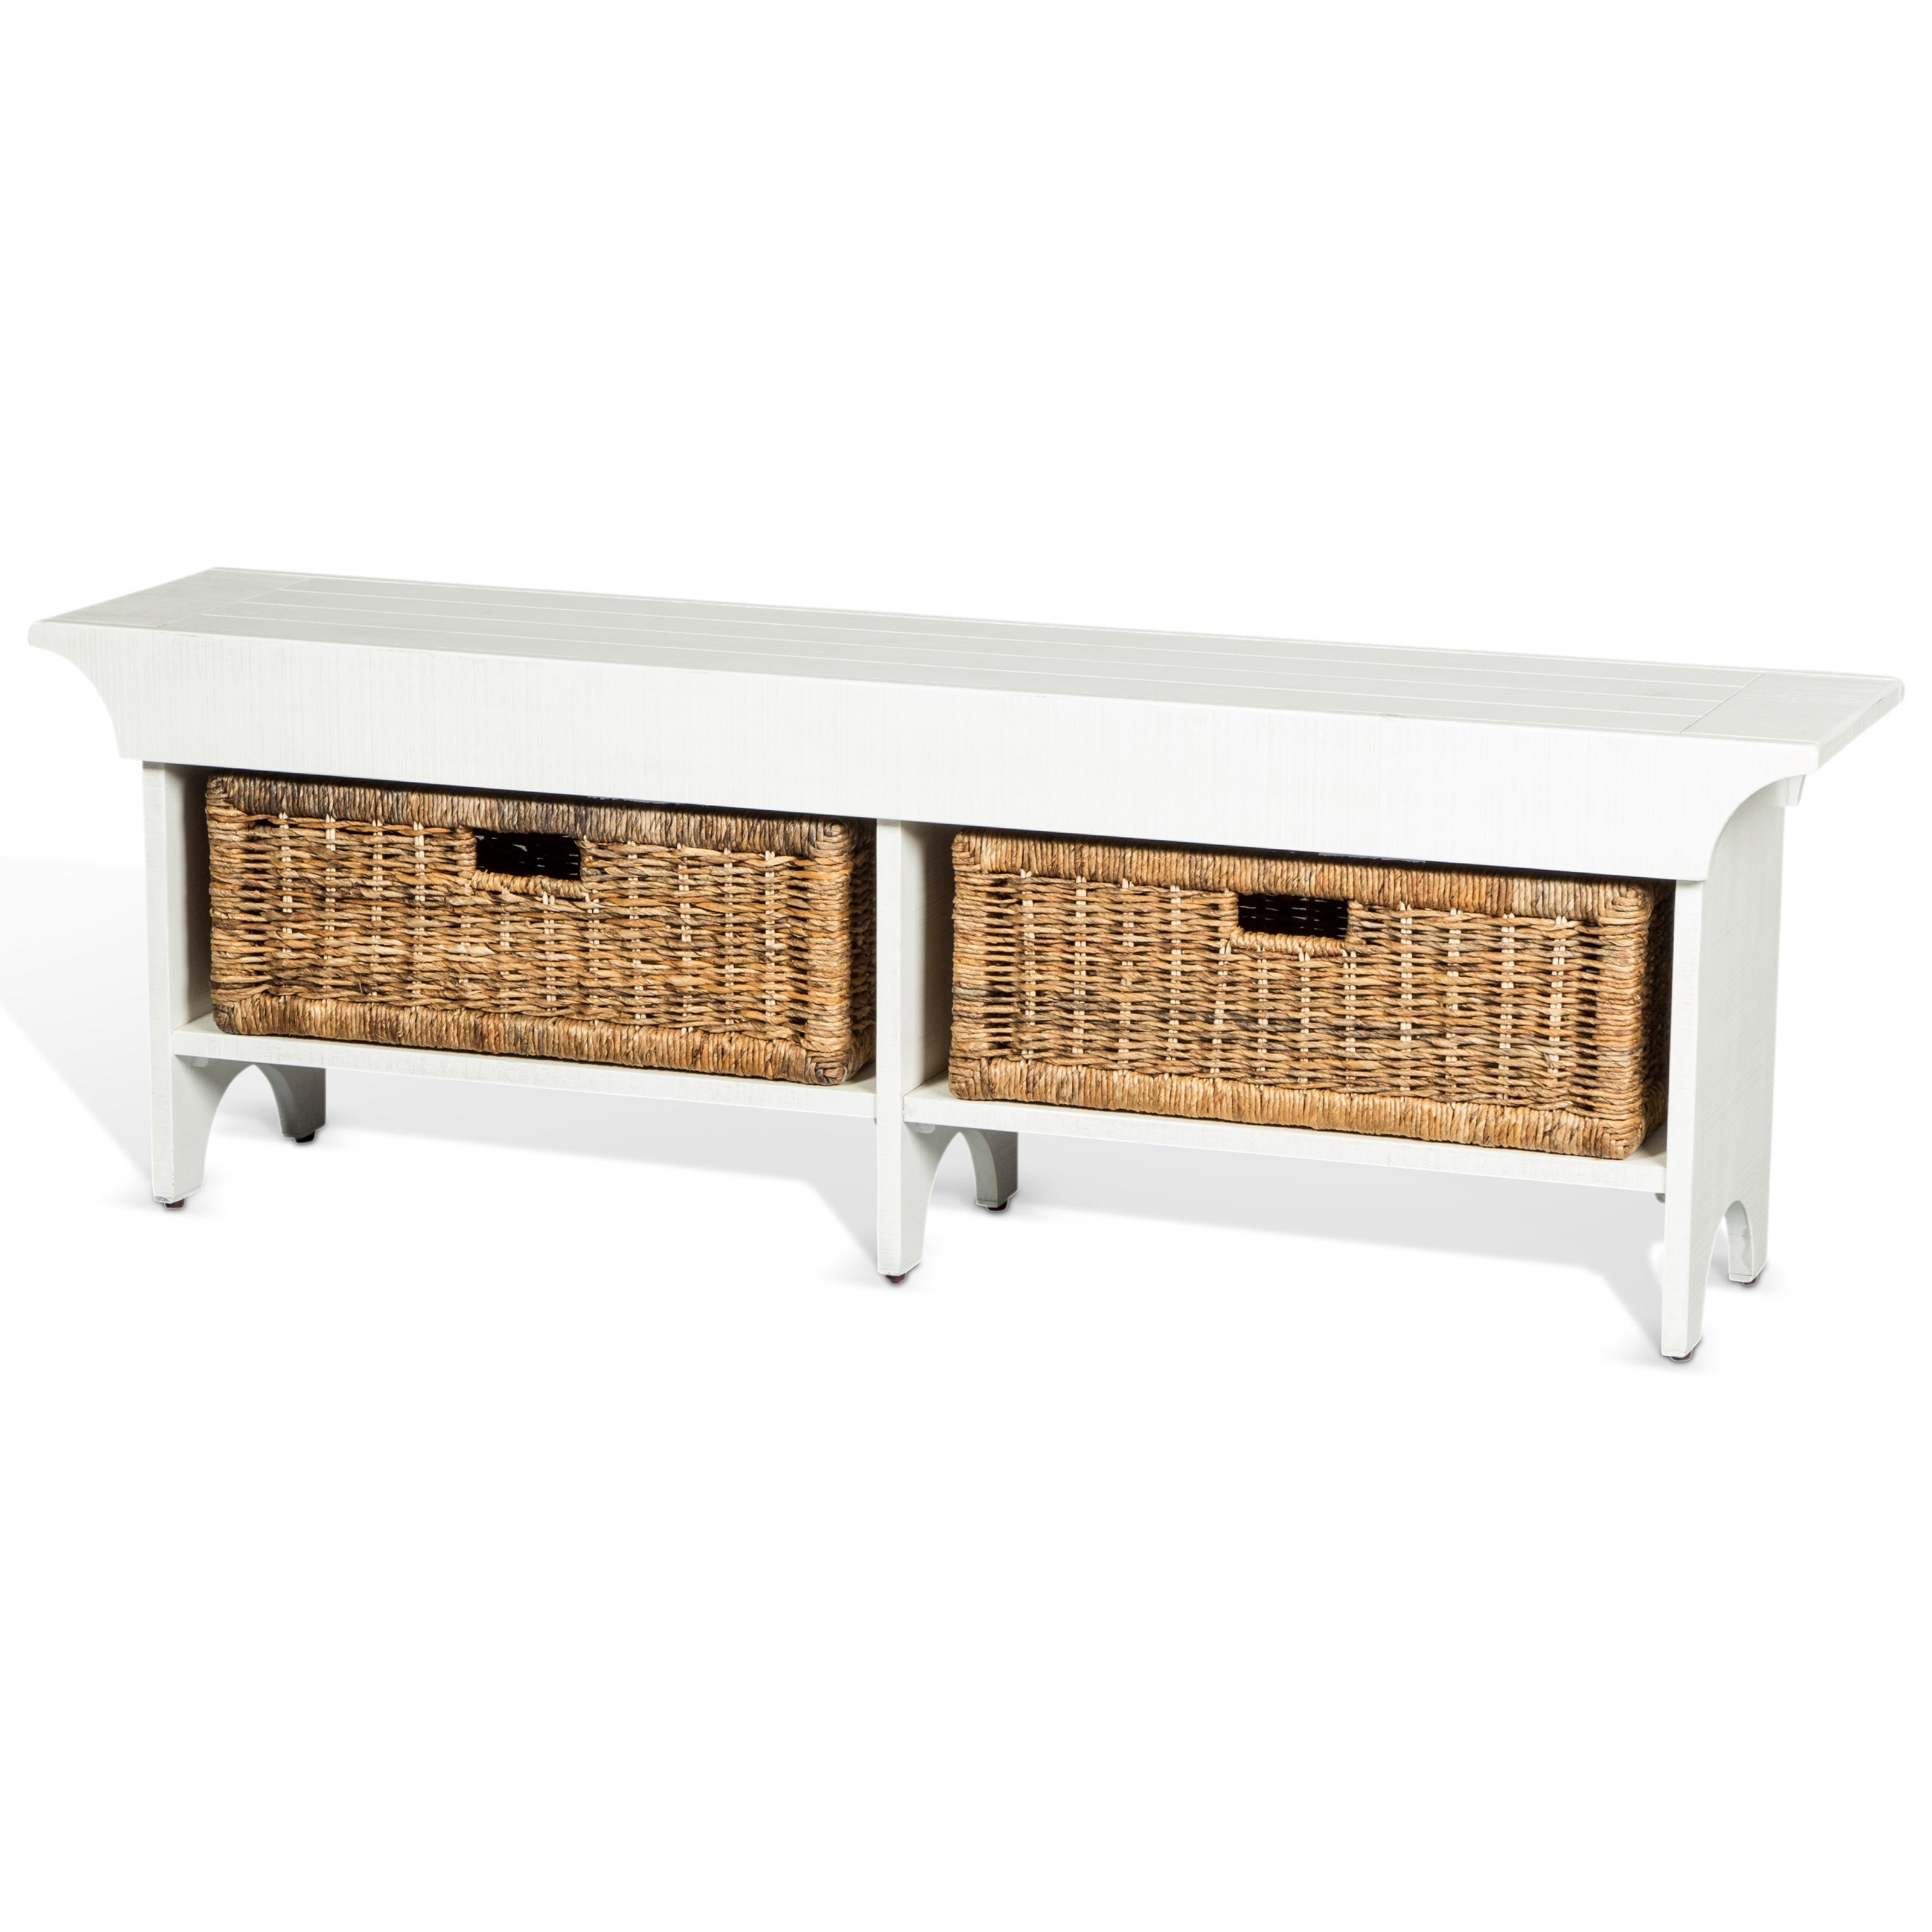 Manor House Storage Bench by Sunny Designs at Stoney Creek Furniture